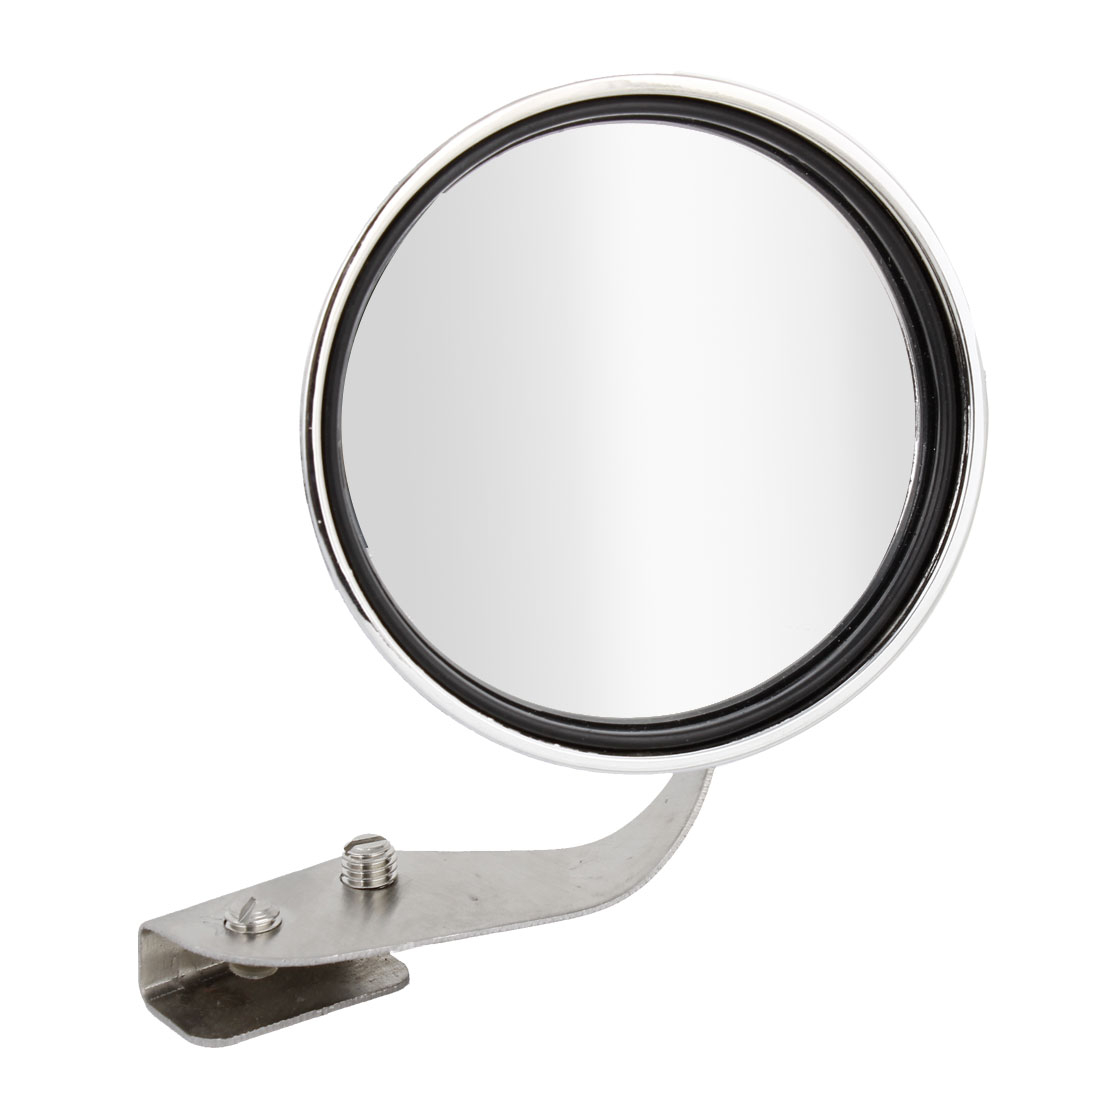 Auto Car Silver Tone Round Shaped Adjustable Angle Left Sideview Assistant Mirror